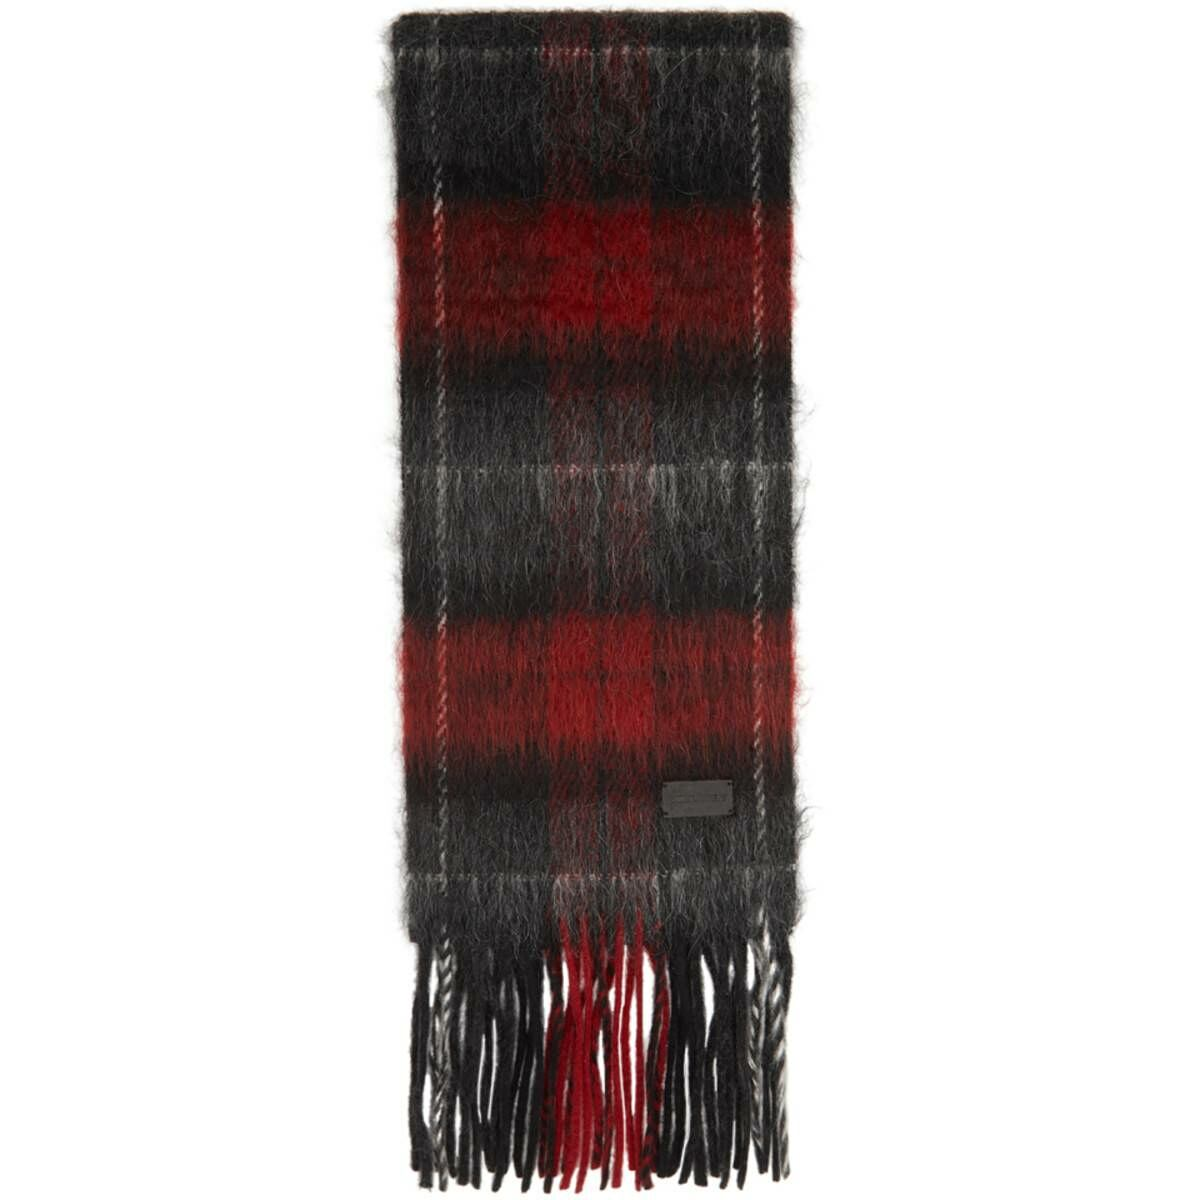 Saint Laurent Black and Red Tartan Small Scarf Ssense USA MEN Men ACCESSORIES Mens SCARFS